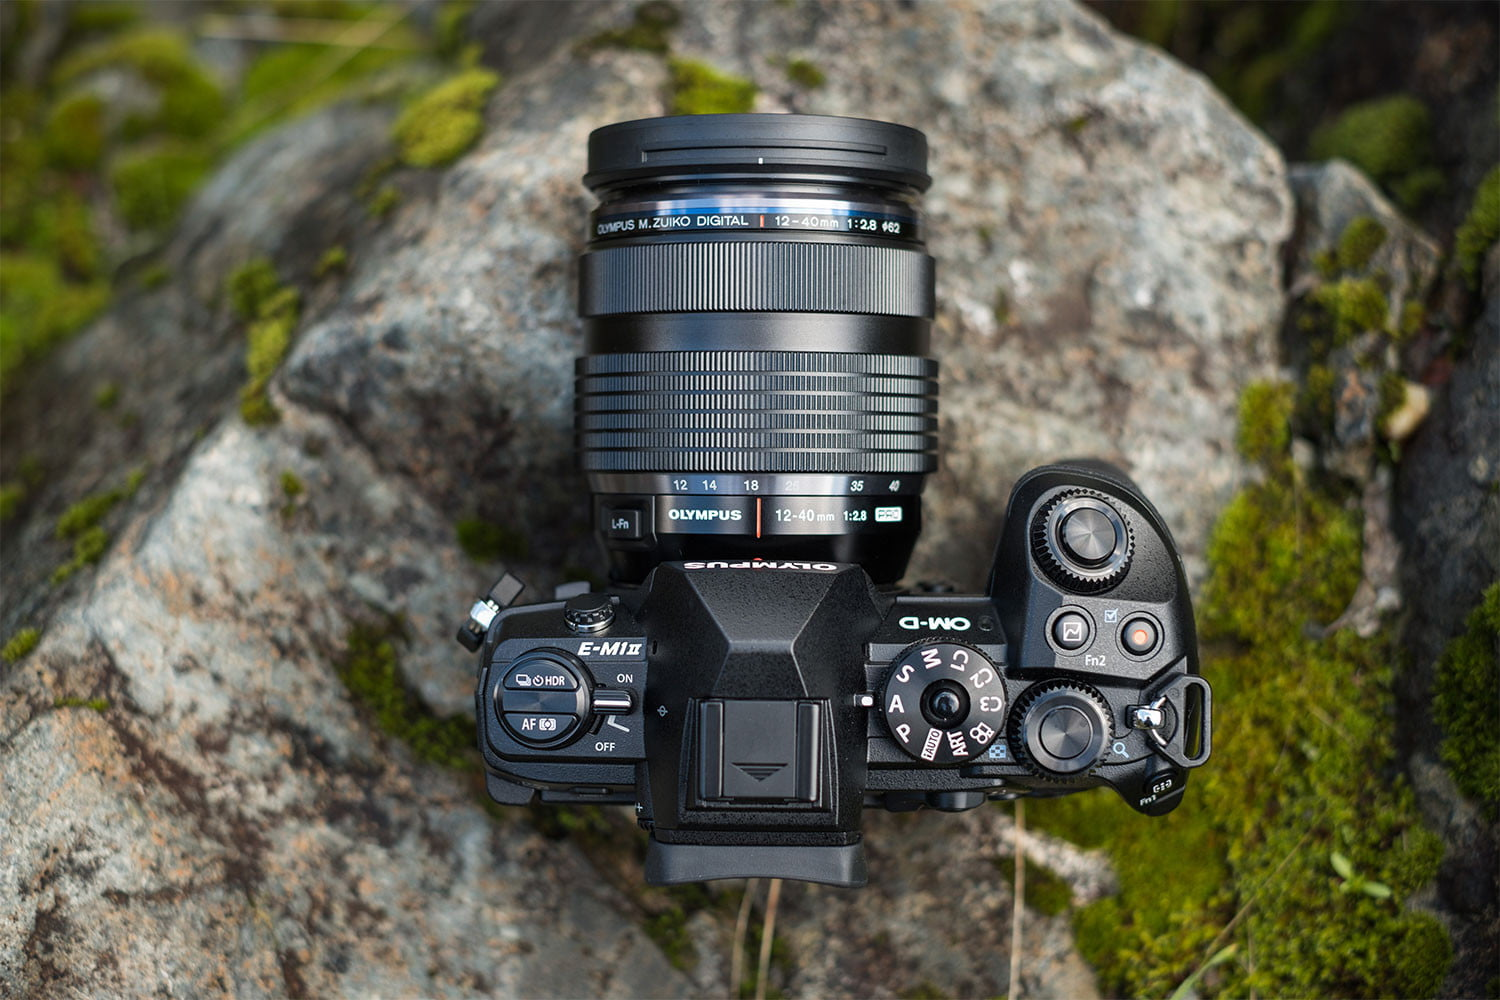 Olympus Om D E M1 Mark Ii Review Digital Trends M5 Body Only